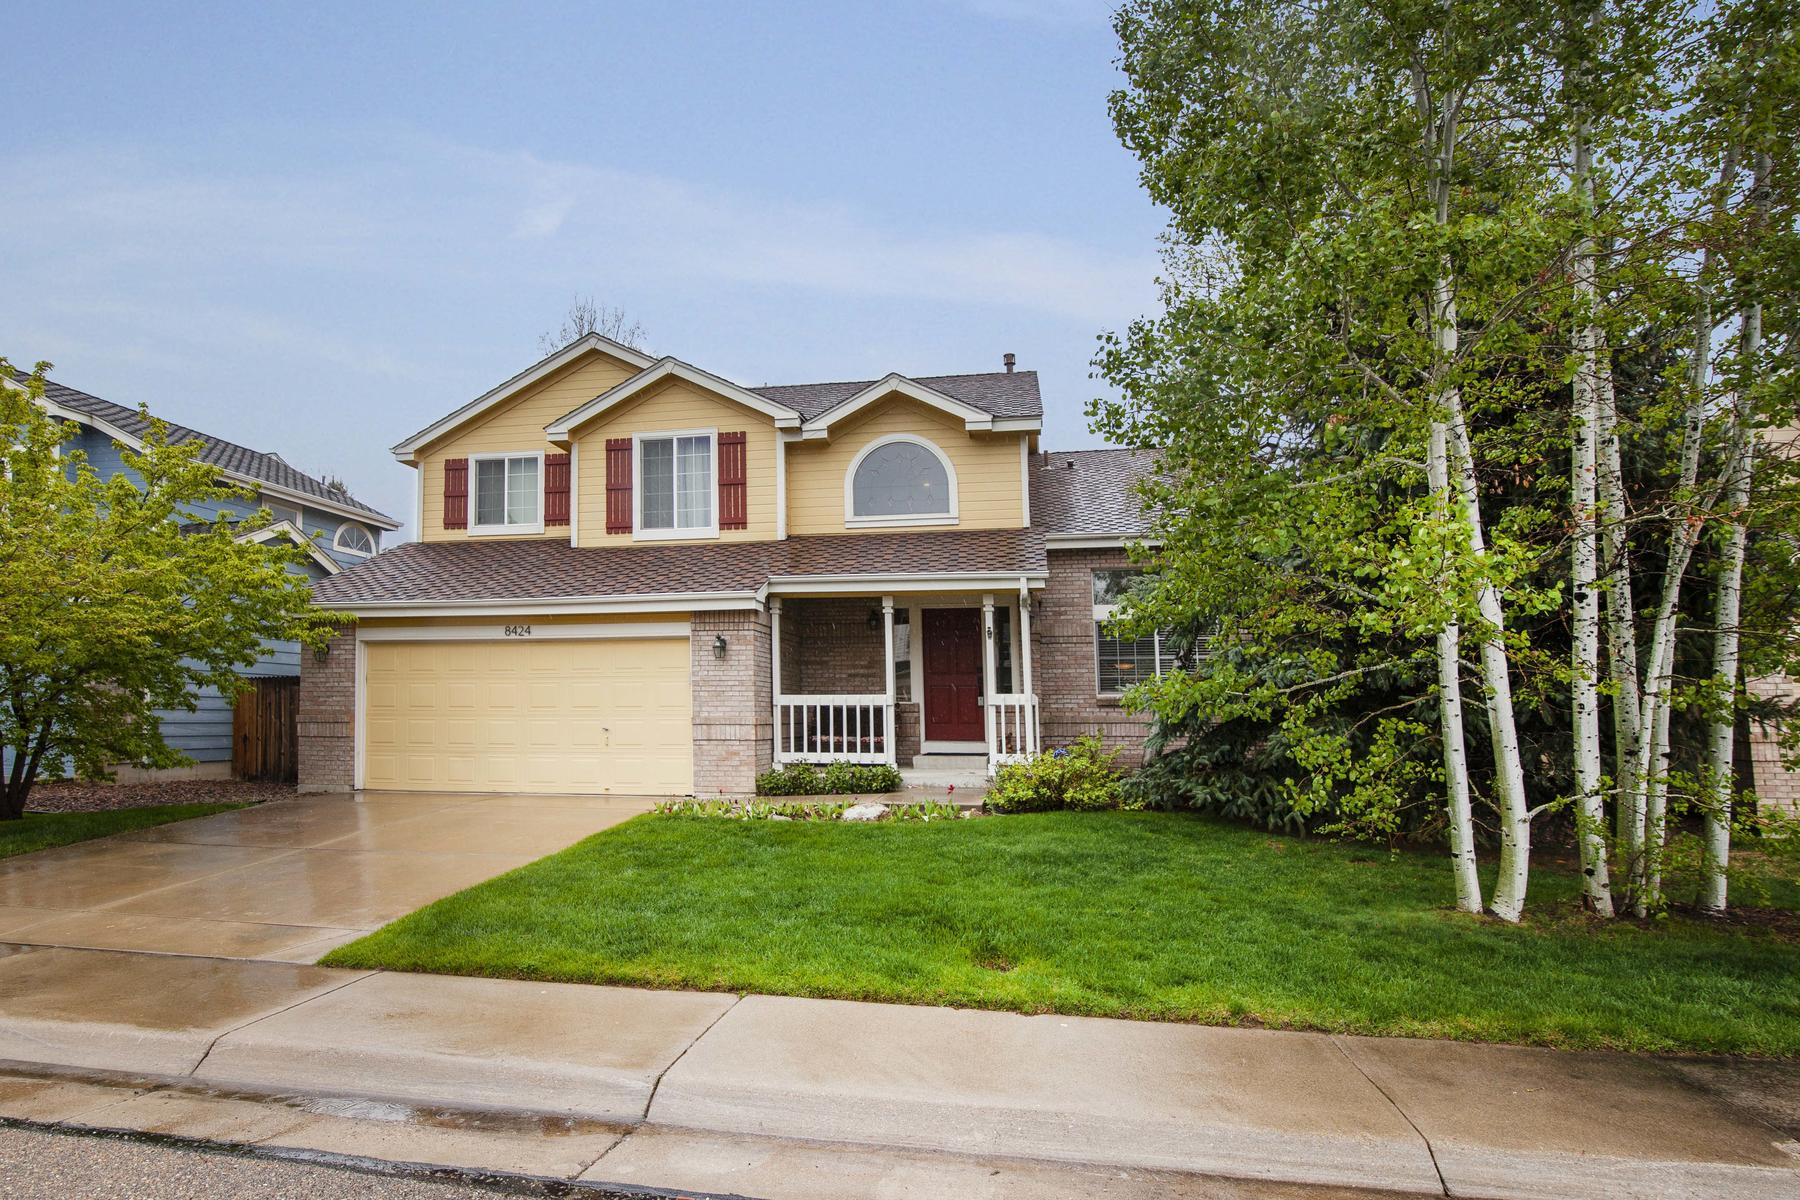 Single Family Homes for Sale at Welcome Home to this Amazing 4 Bed/3 Bath Gem in the Highly Sought After Arvada 8424 Oak Way Arvada, Colorado 80005 United States